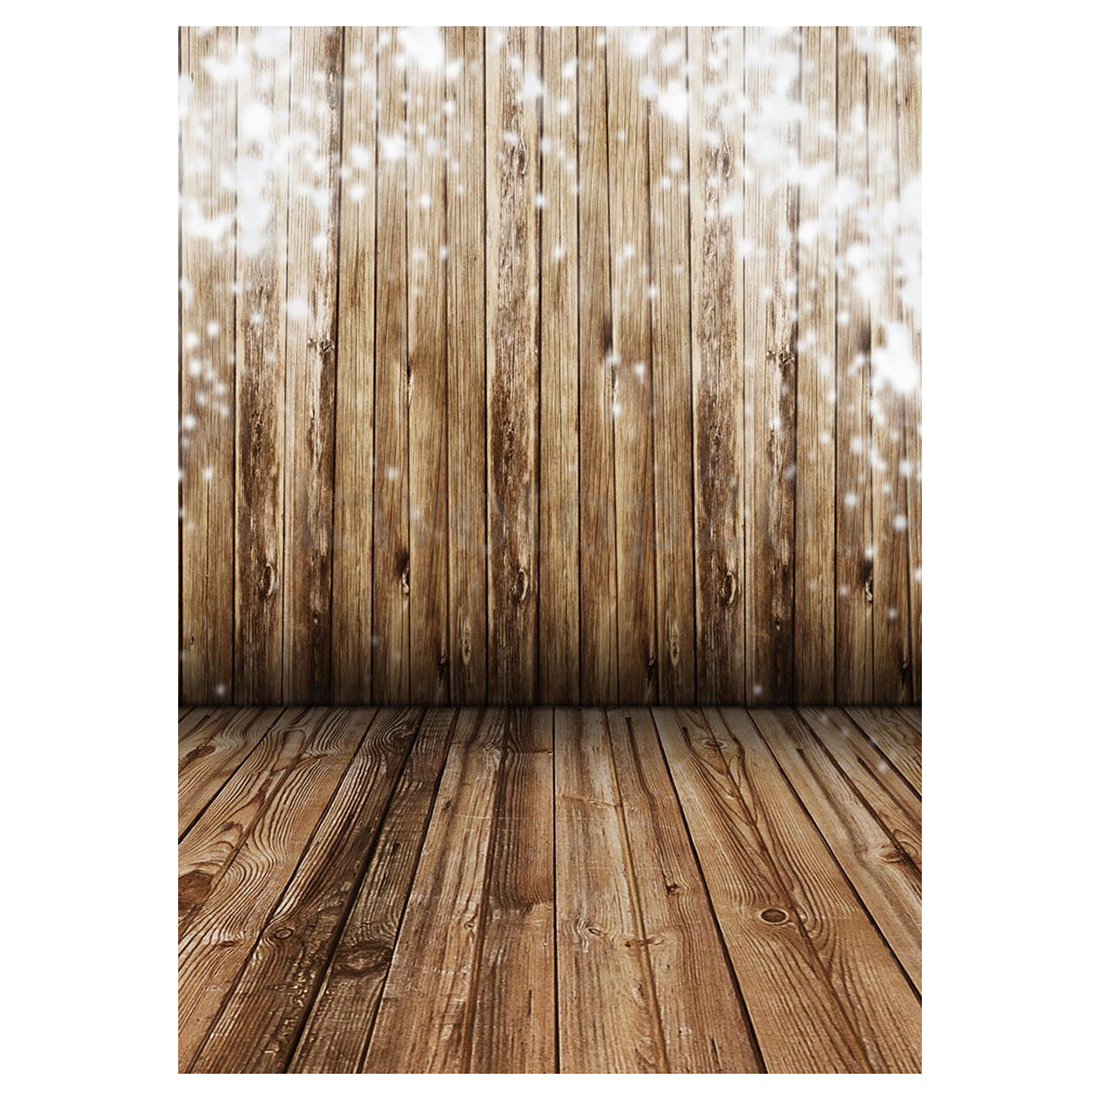 3X5FT Wood Wall Floor Vinyl Photography Backdrop Photo Background Studio Props shengyongbao 300cm 200cm vinyl custom photography backdrops brick wall theme photo studio props photography background brw 12